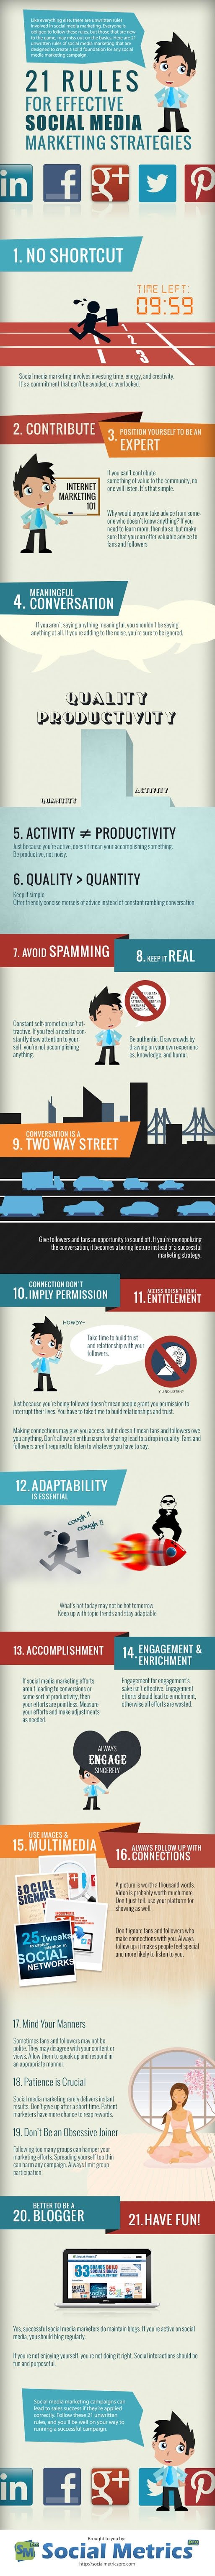 21 Rules For Effective Social Media Marketing Strategies #infographic